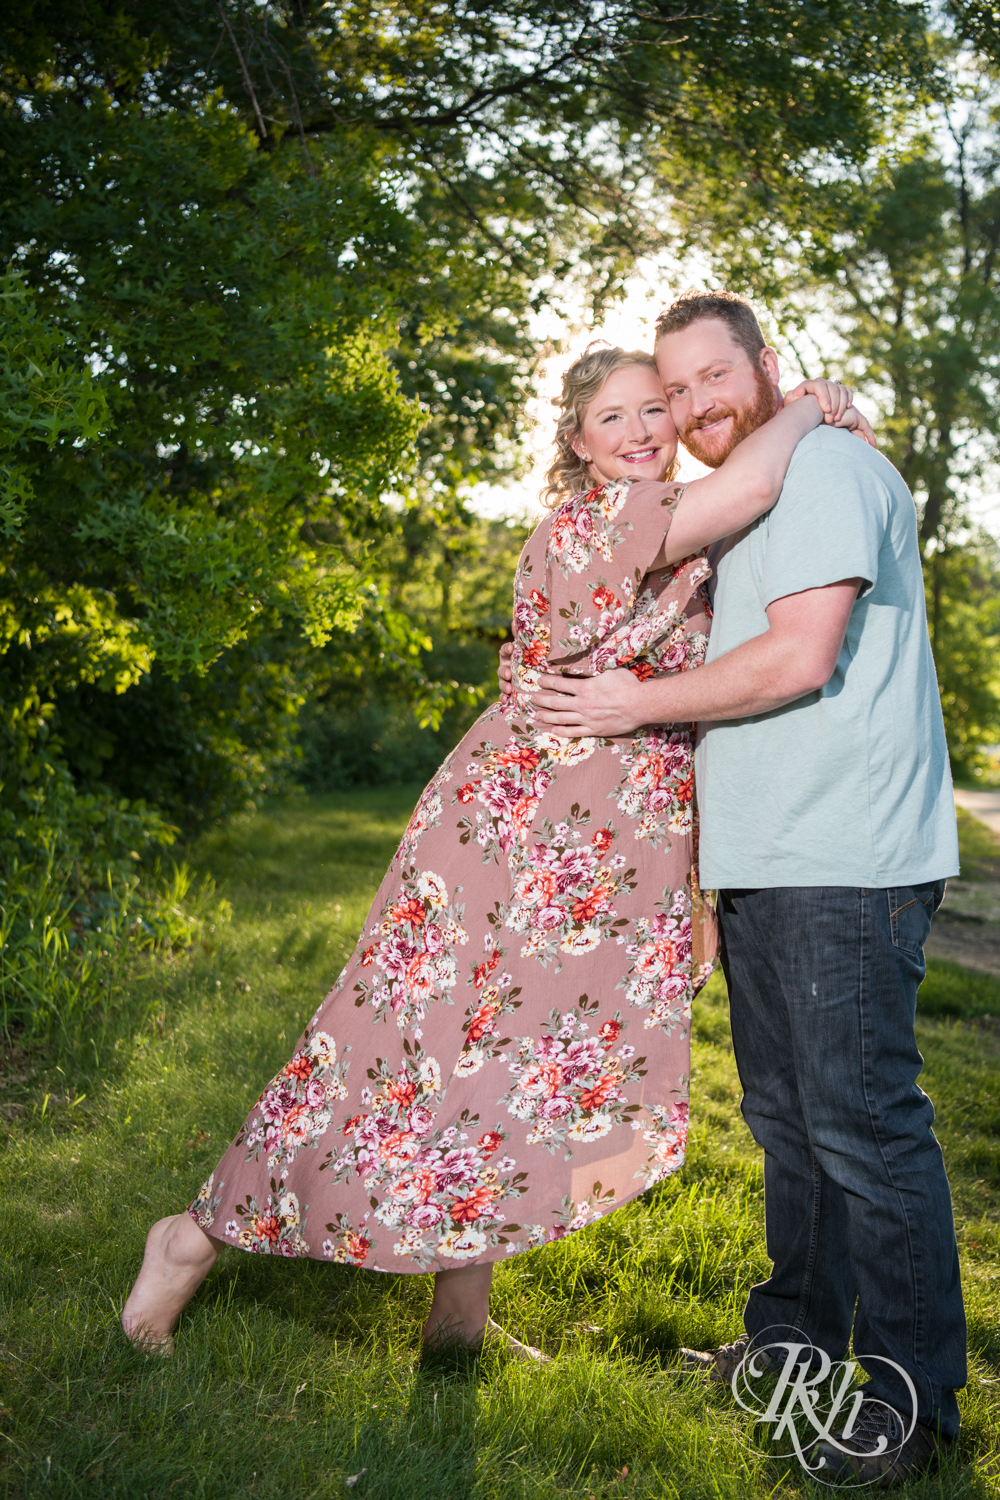 Constance & Josh - Minnesota Engagement Photography - Lebanon Hills Regional Park - RKH Images - Blog (1 of 18).jpg